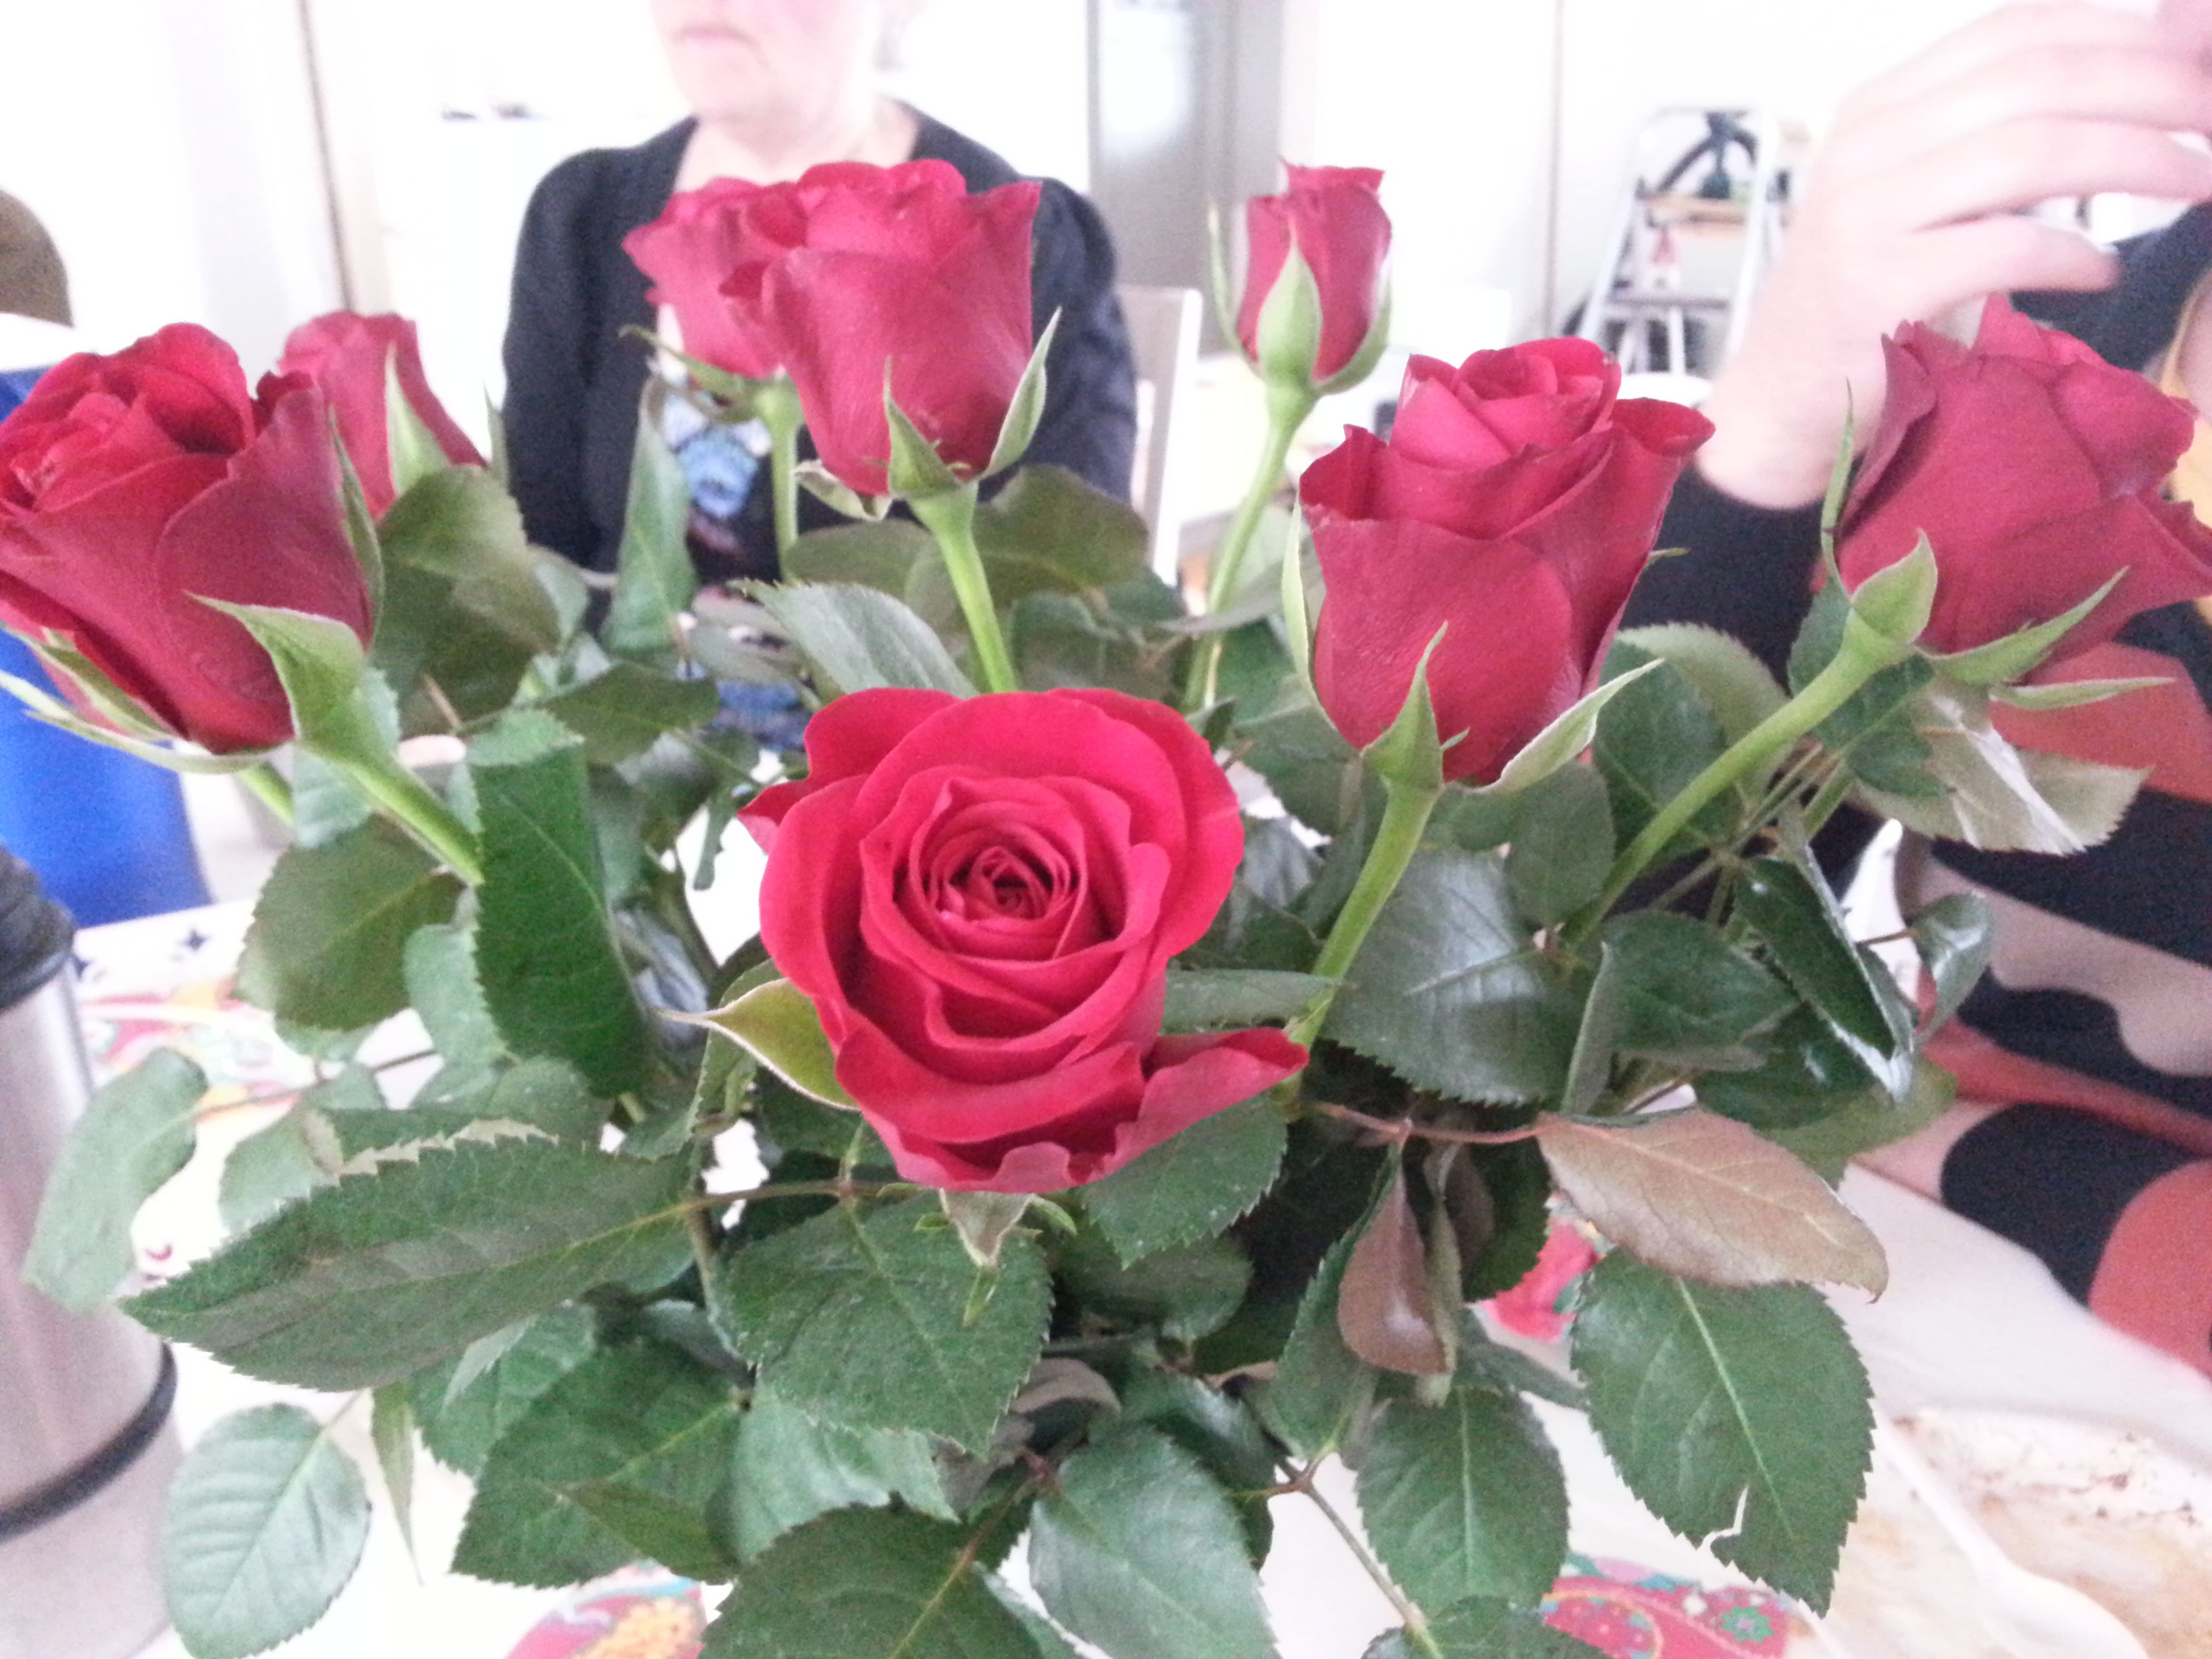 flower, rose - flower, fragility, petal, freshness, flower head, pink color, leaf, indoors, rose, plant, growth, beauty in nature, red, nature, potted plant, vase, bouquet, blooming, close-up